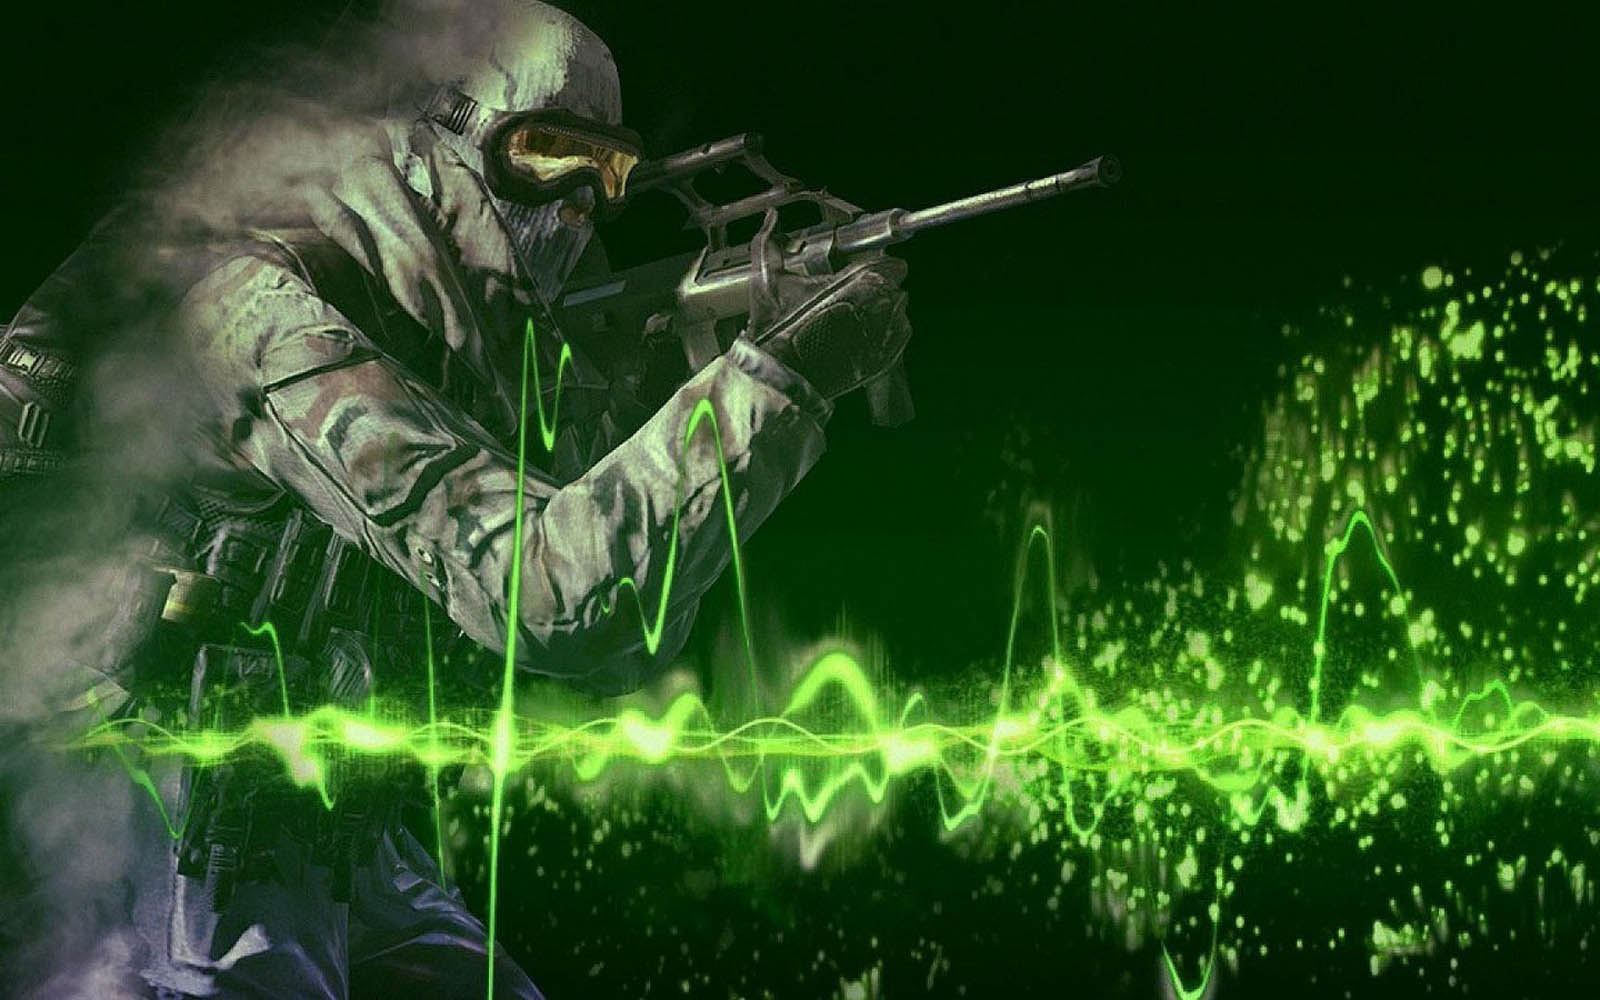 the call of duty modern warfare 3 wallpapers call of duty modern 1600x1000